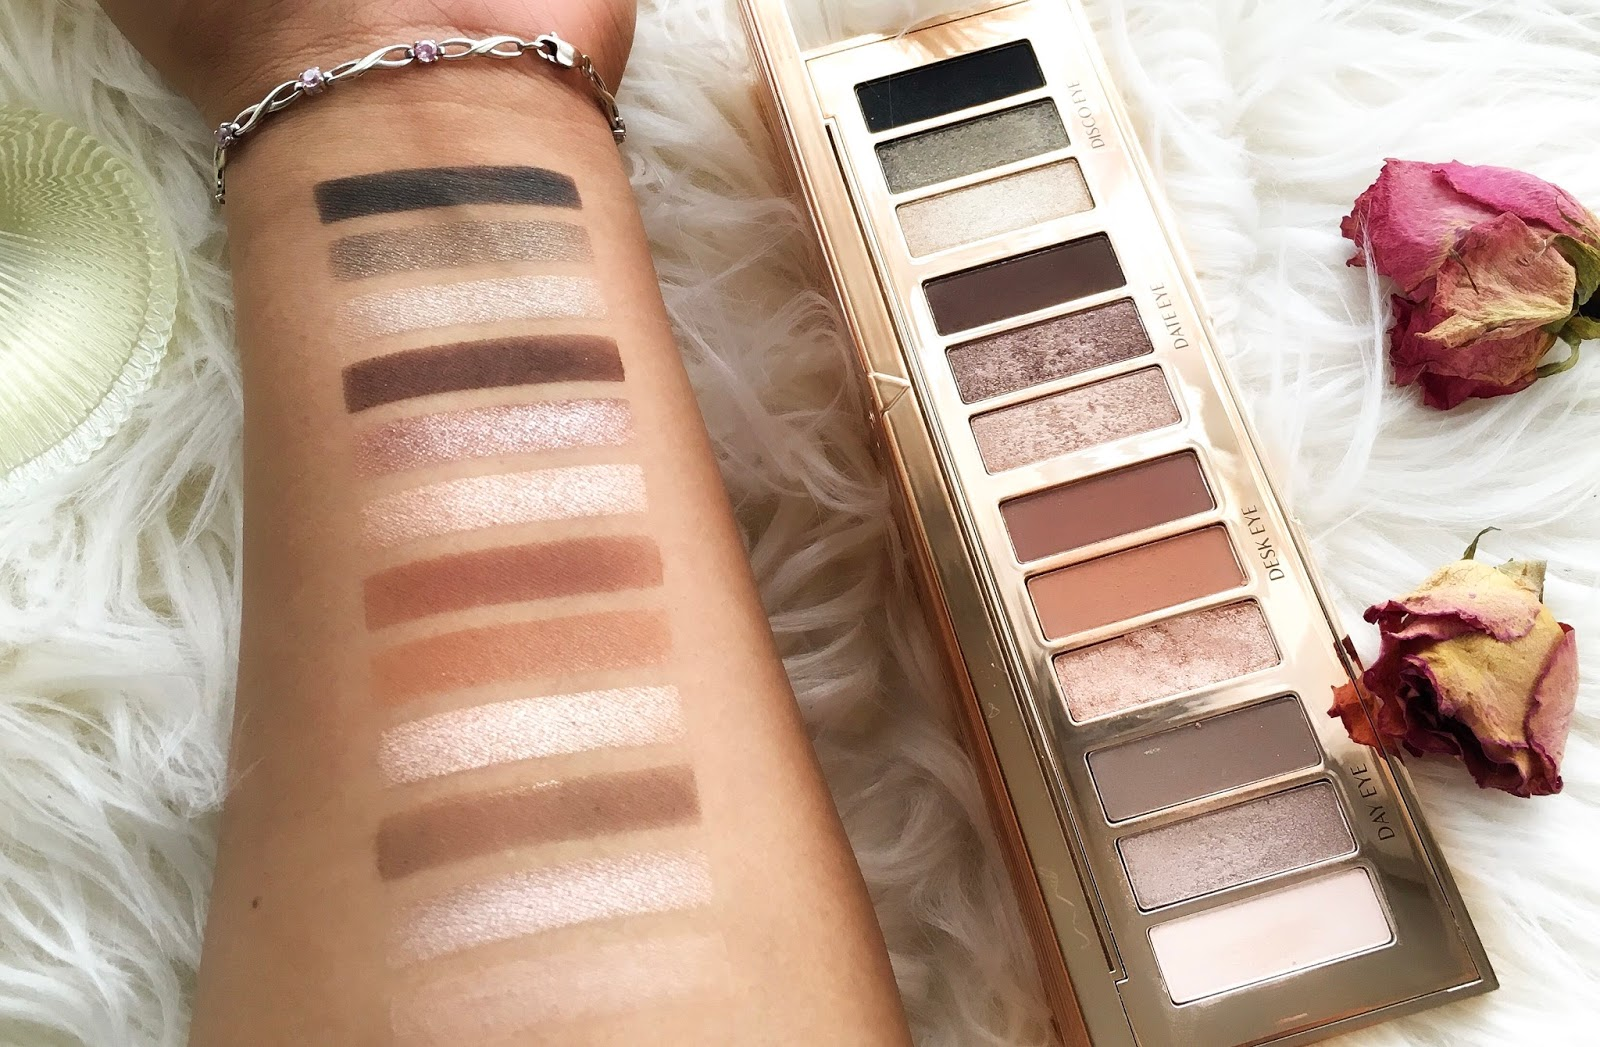 swatch perfect uk review, makeup stencils, makeup swatches, best stencils for makeup swatches, charlotte tilbury instant eye palette medium nc40 swatches